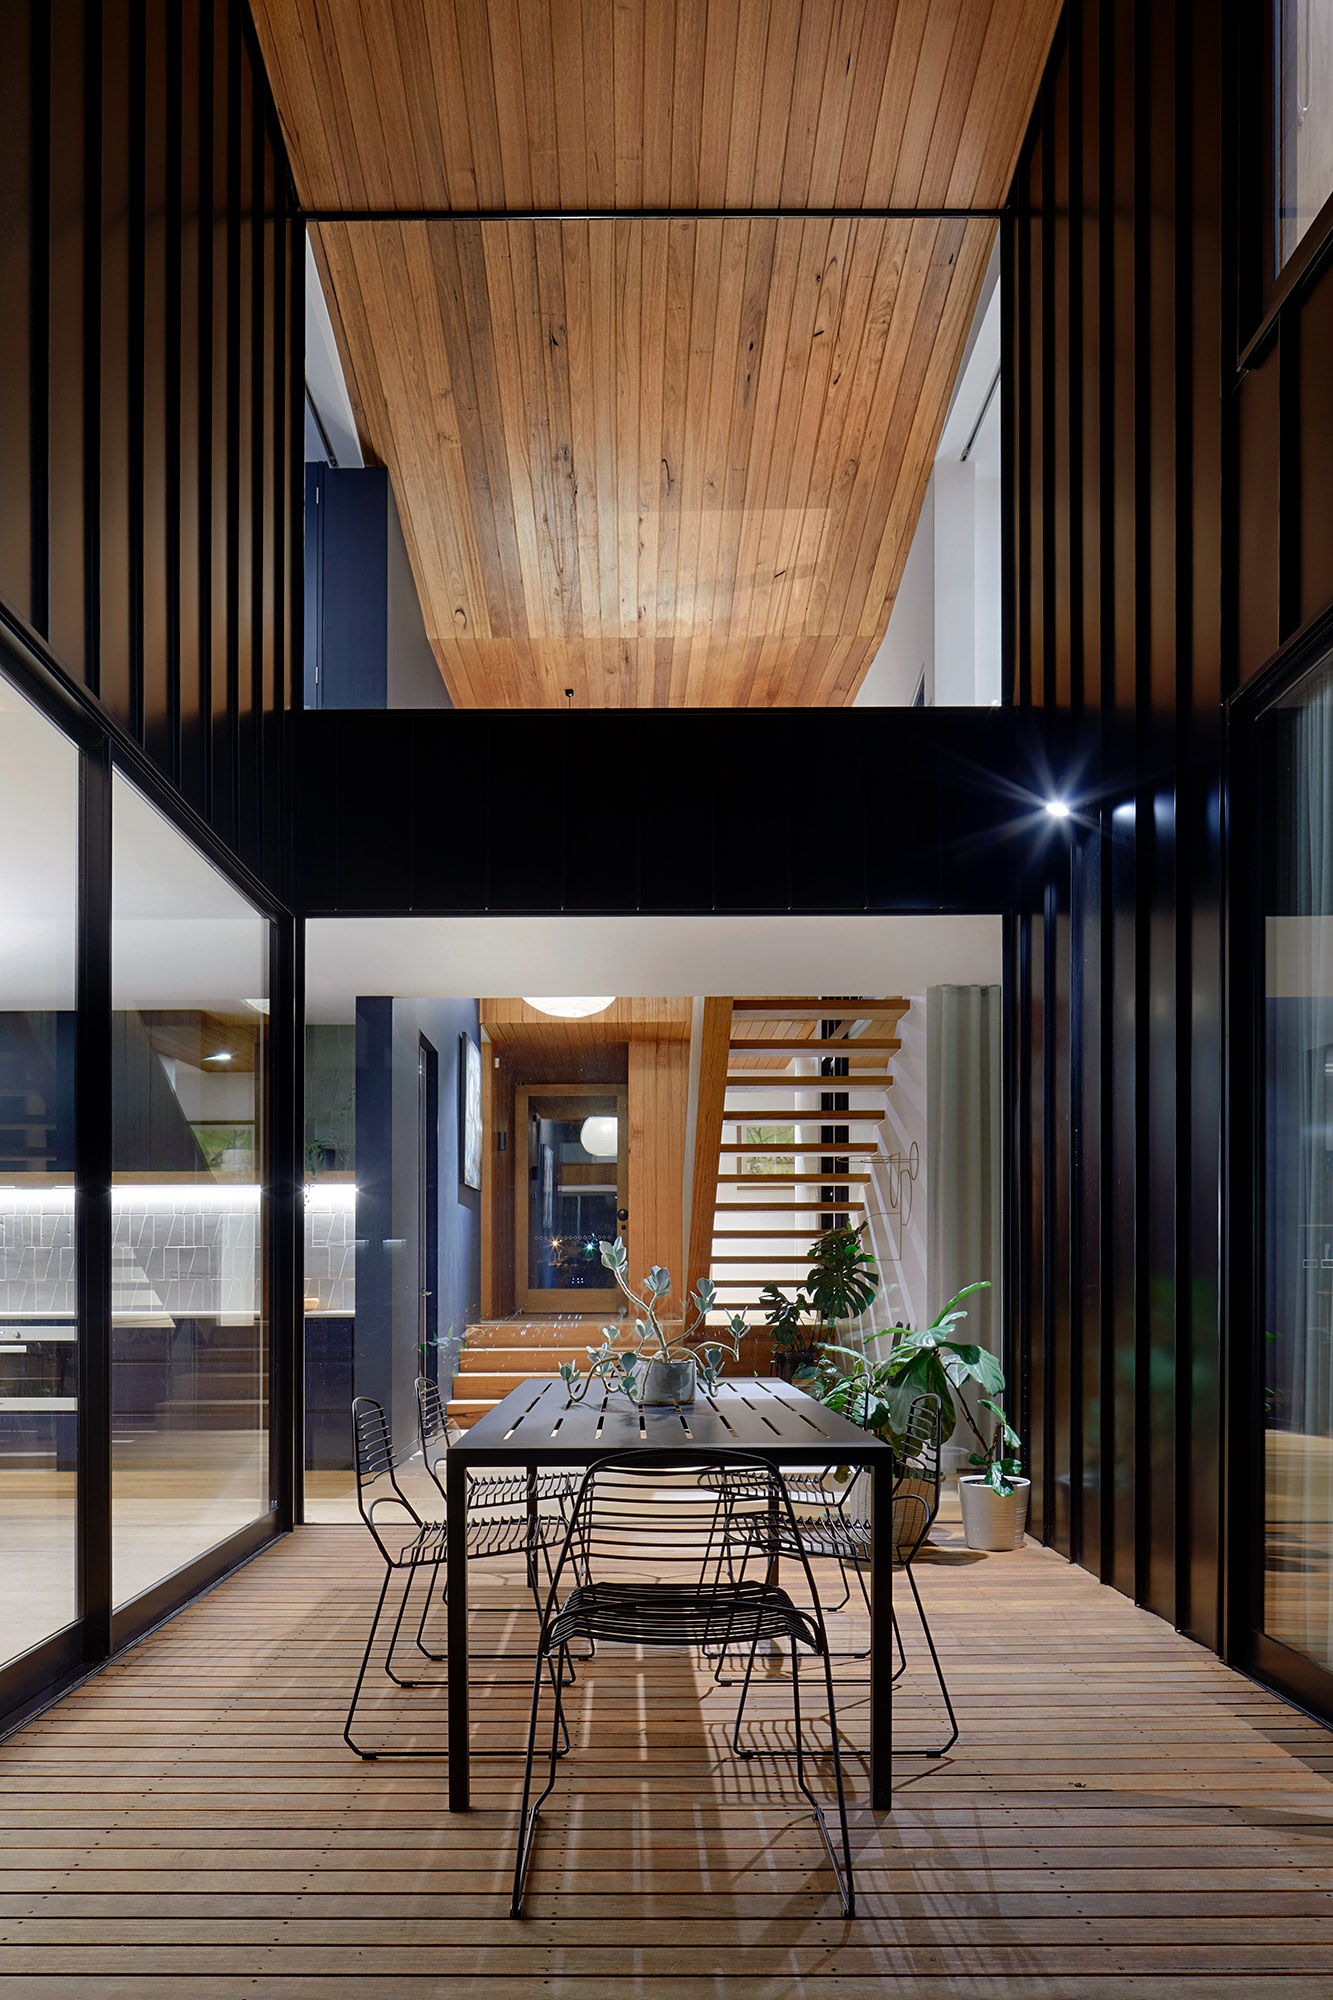 In Order To Create A Home That Functions For Both A Couple And Large Groups, Kart Created A 'connected' Plan